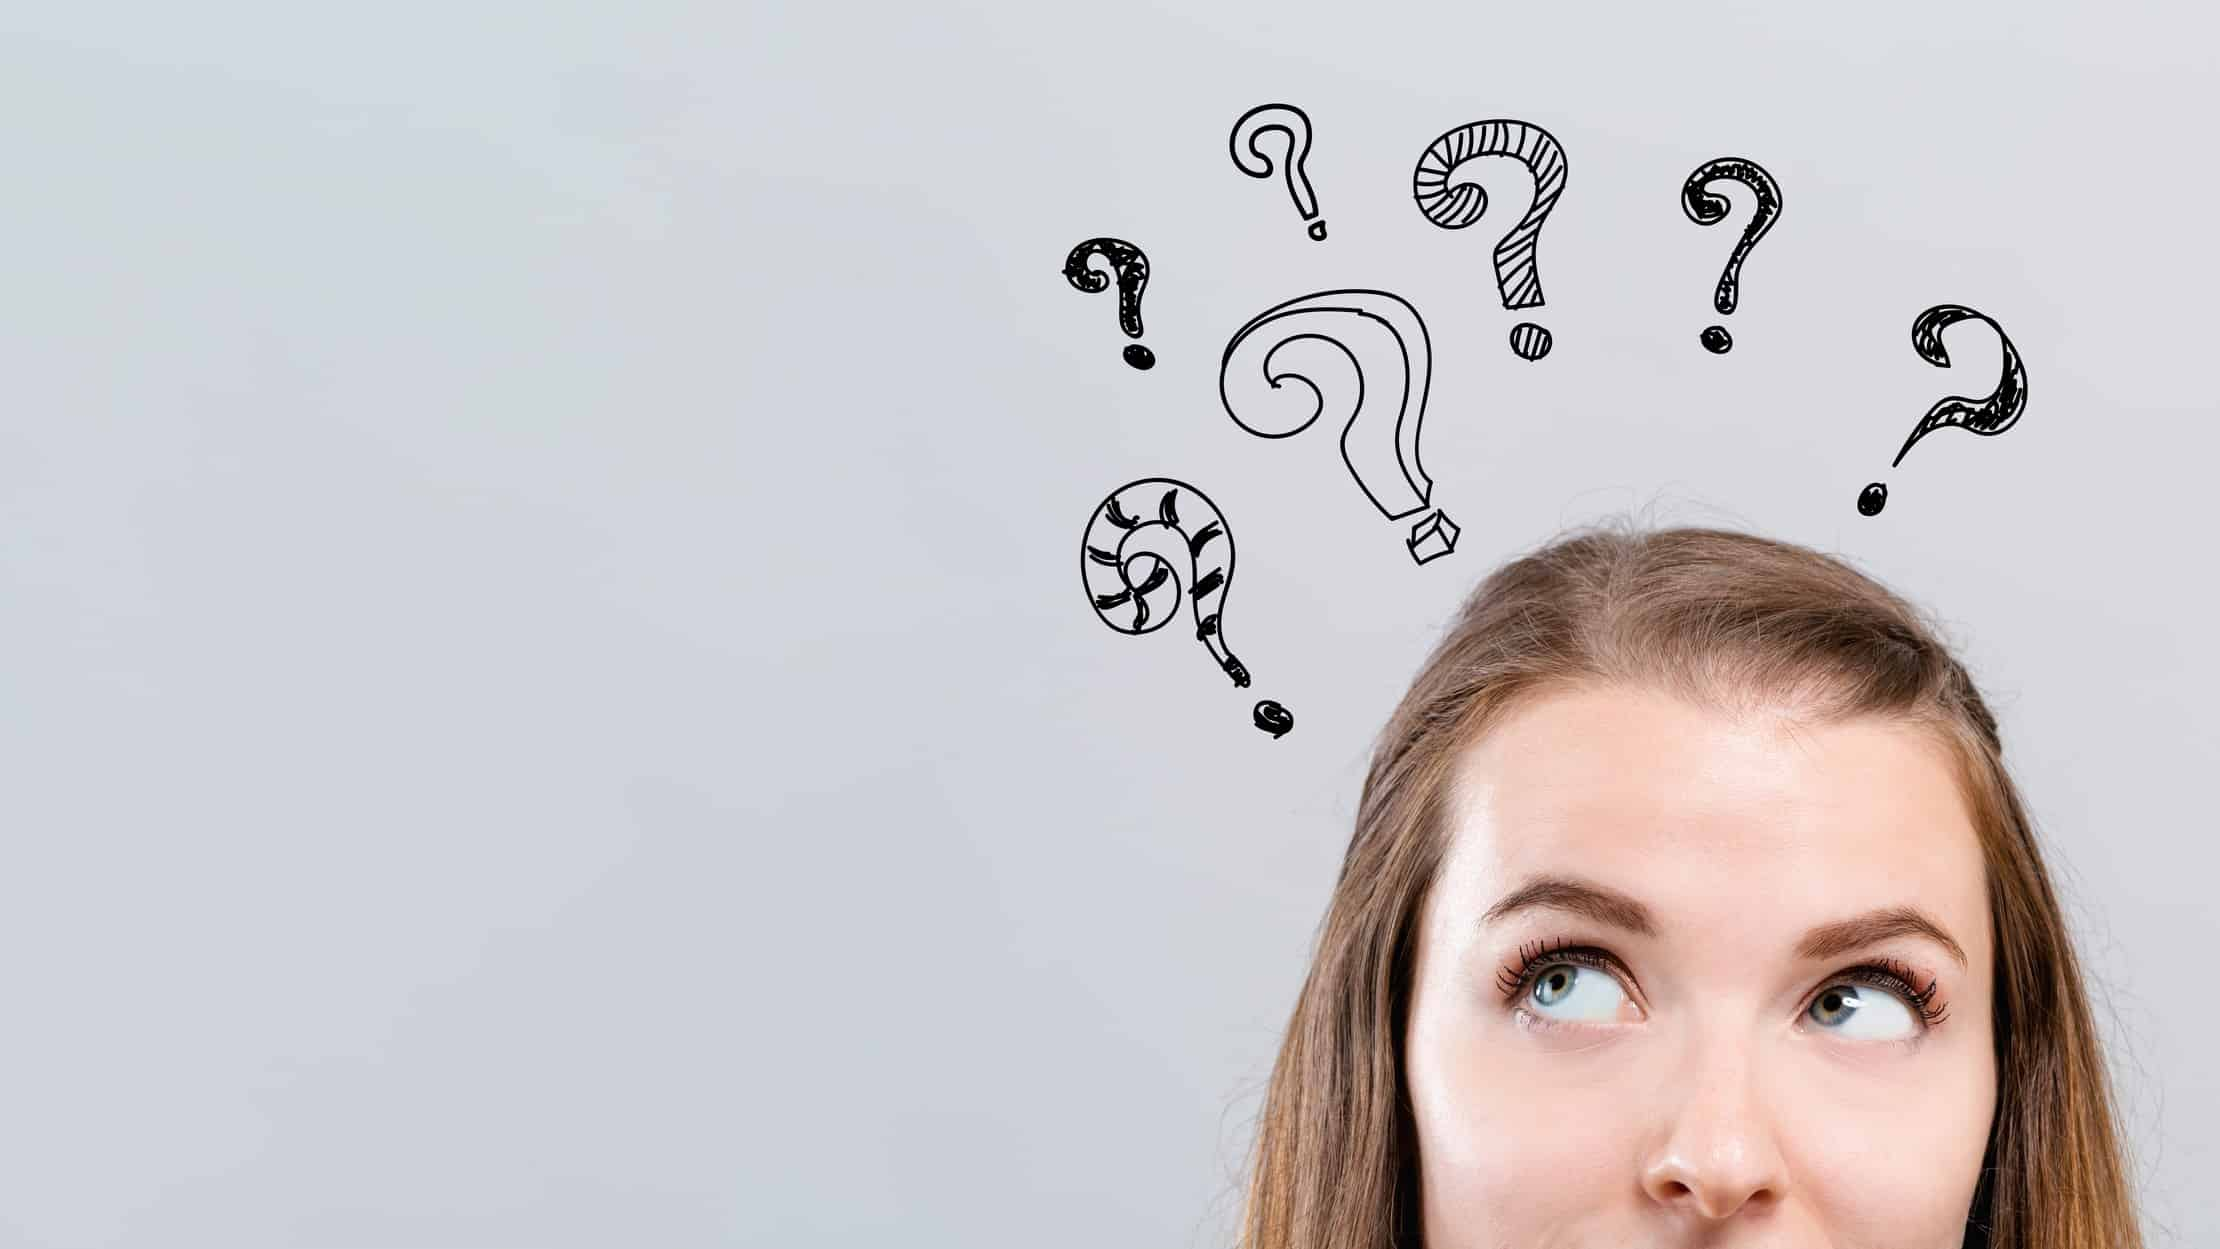 Questioning asx share price represented by women with virtual question marks above her head